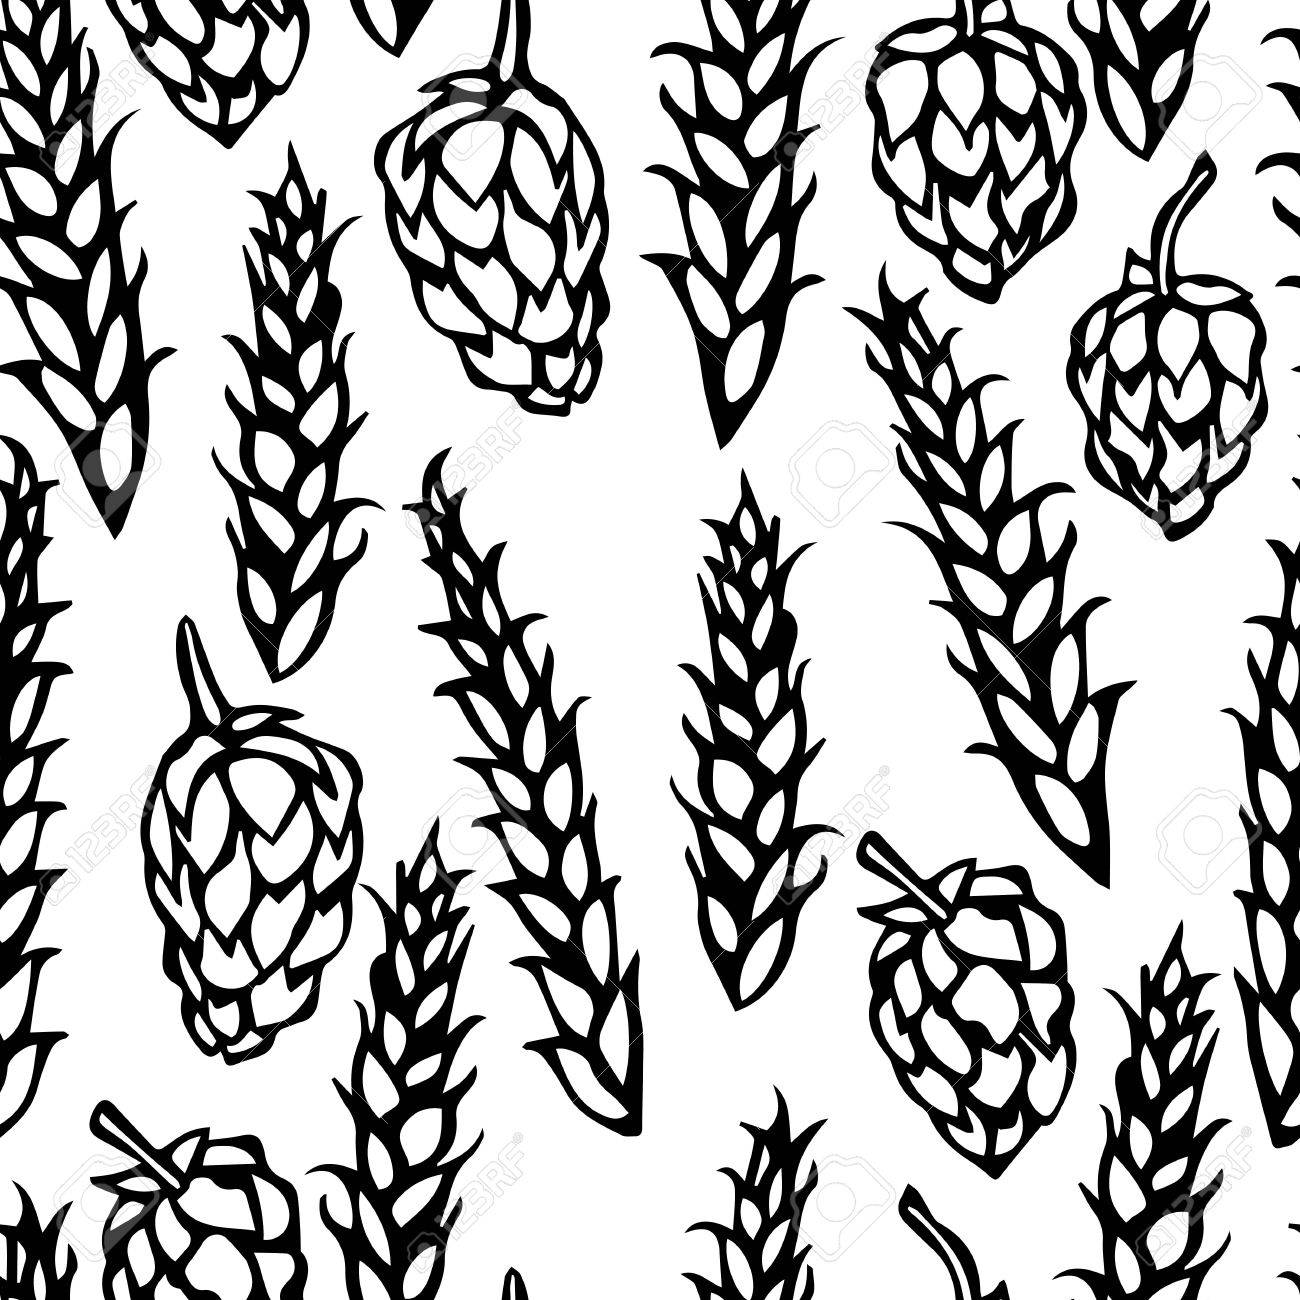 1300x1300 Seamless With Hop And Malt. Isolated On A White Background